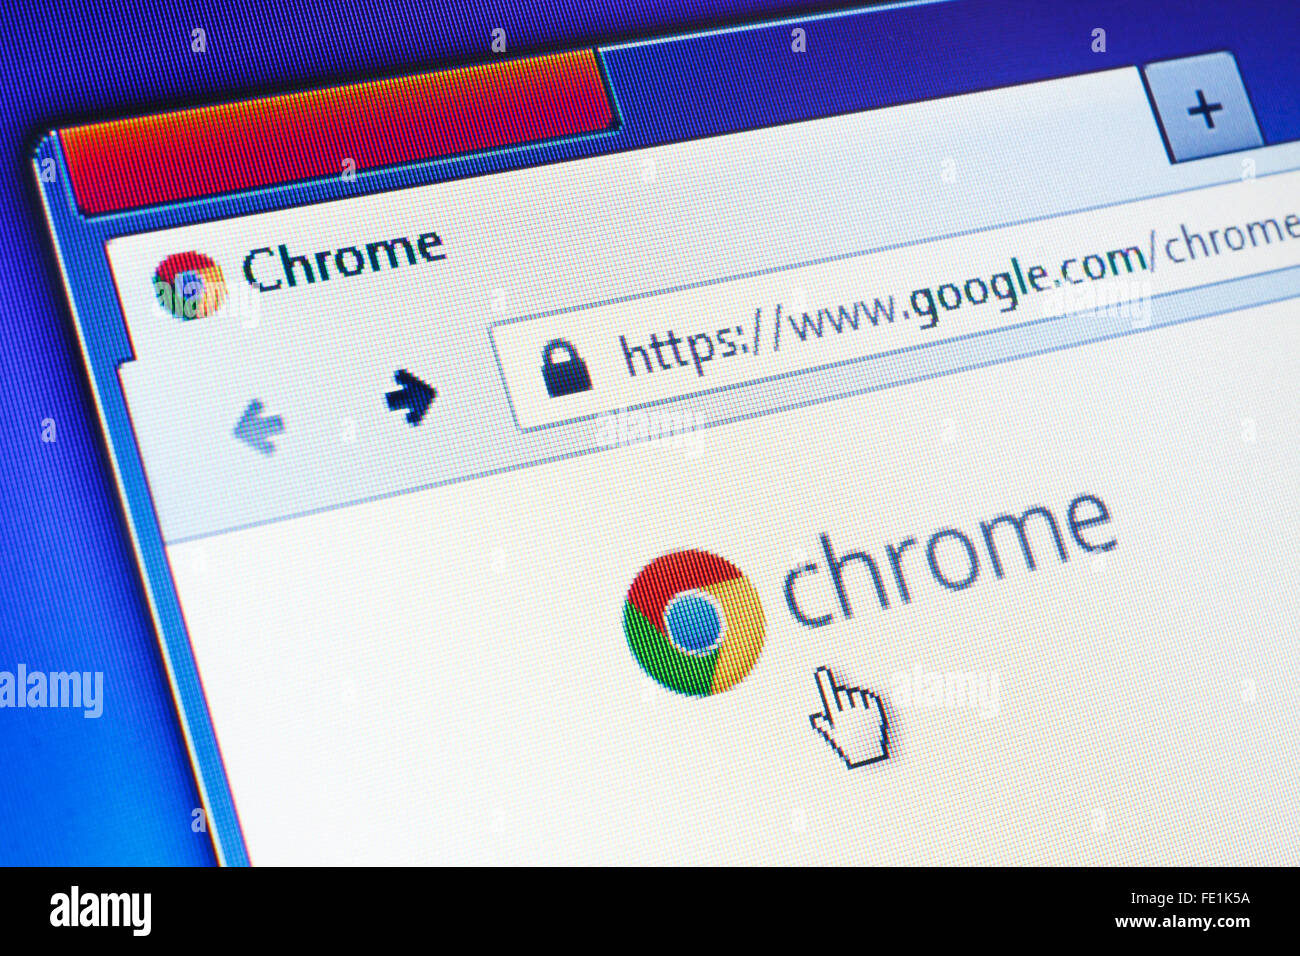 GDANSK, POLAND - SEPTEMBER 10, 2015. Google Chrome homepage on computer screen. Editorial use only - Stock Image